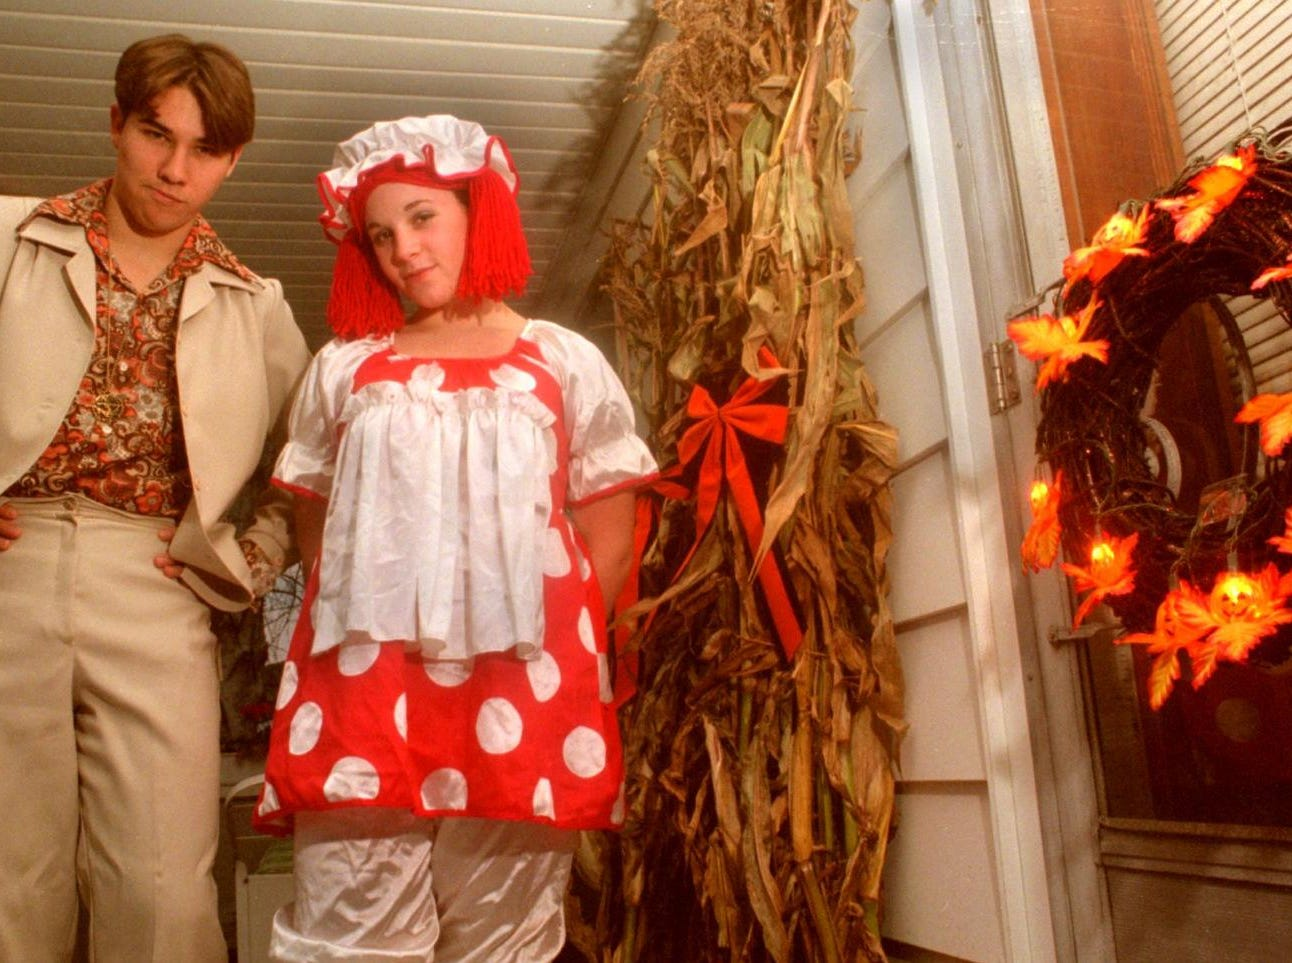 1996: Matt Balch, 17, and Michelle Mastronardi, 15, say they're not too old to go trick-or-treating on Halloween. Balch, as Discoman, will take his younger brother from door to door, while Mastronardi will collect treats as Raggedy Ann with her cousin.